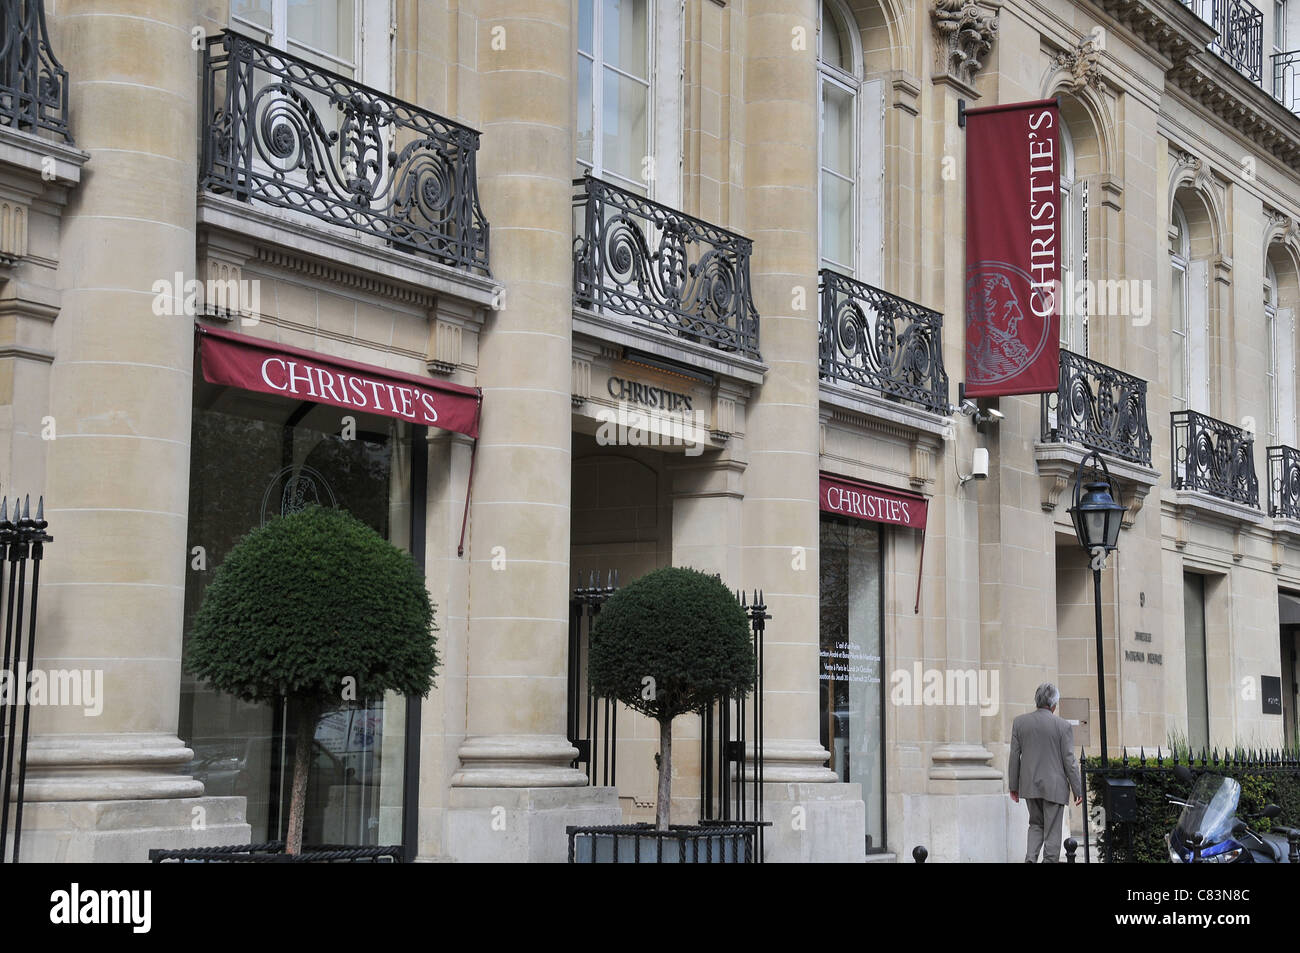 Christie's Matignon avenue Paris France - Stock Image